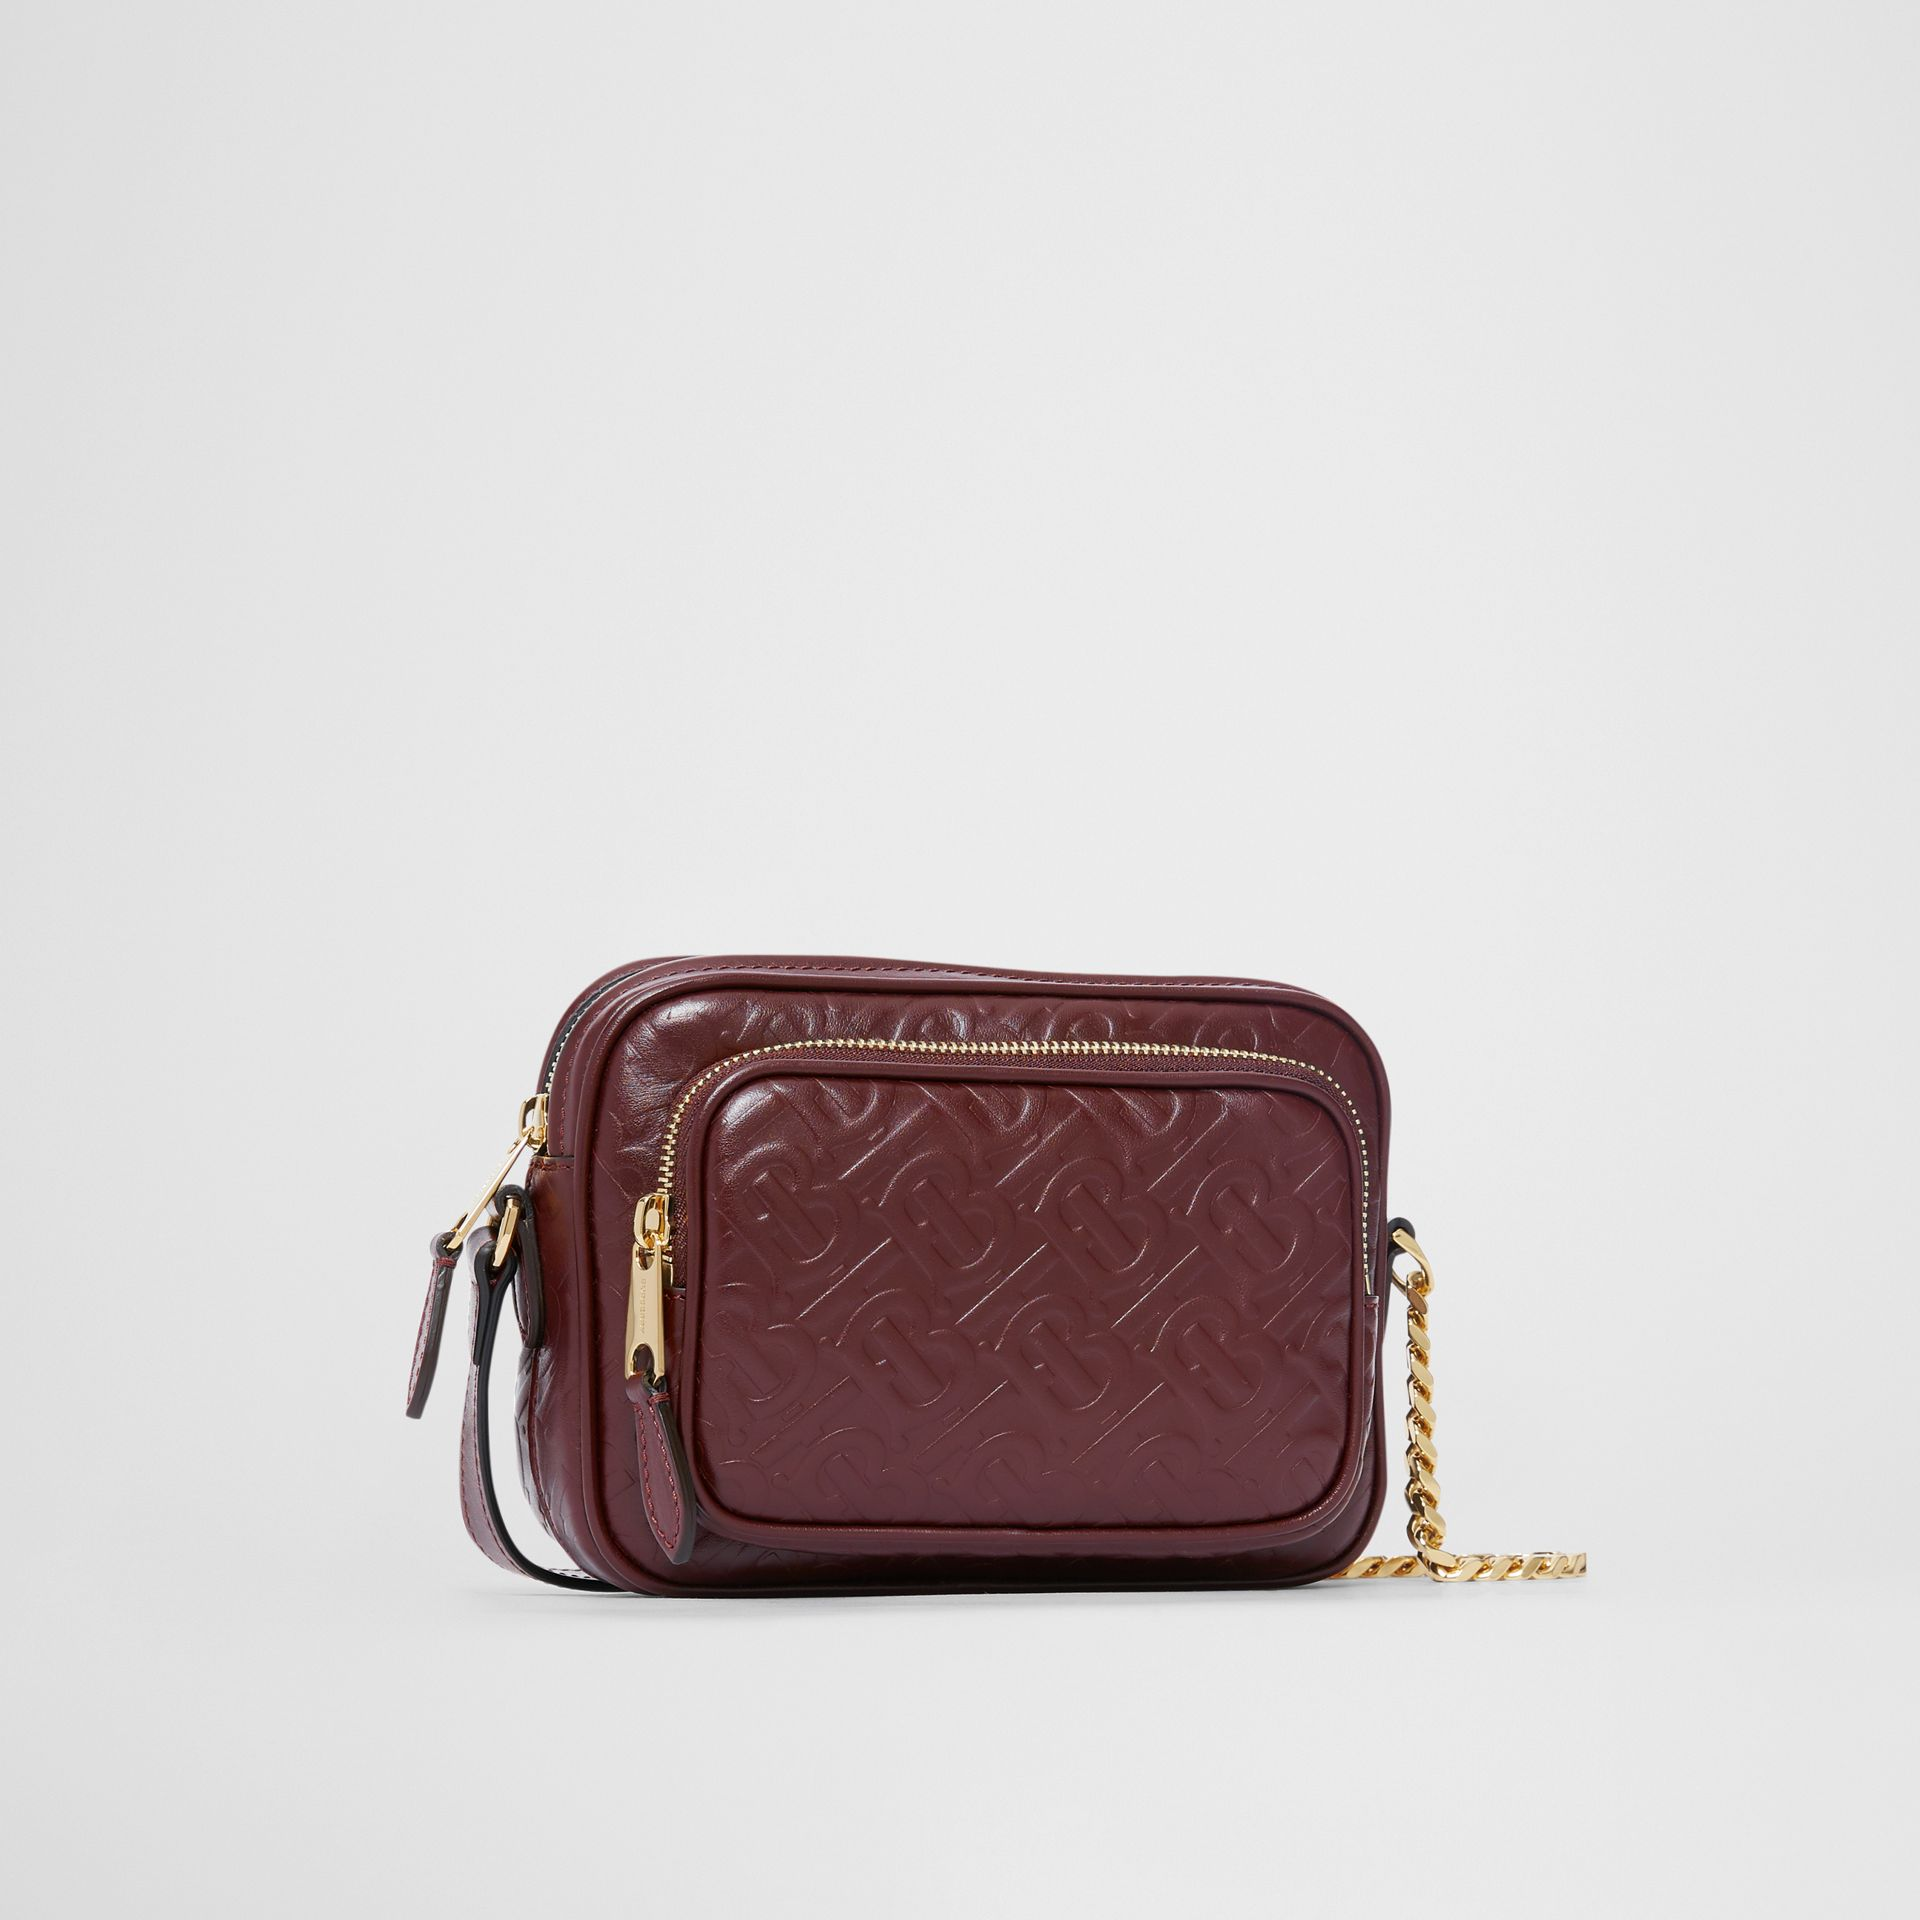 Monogram Leather Camera Bag in Dark Burgundy - Women | Burberry - gallery image 4